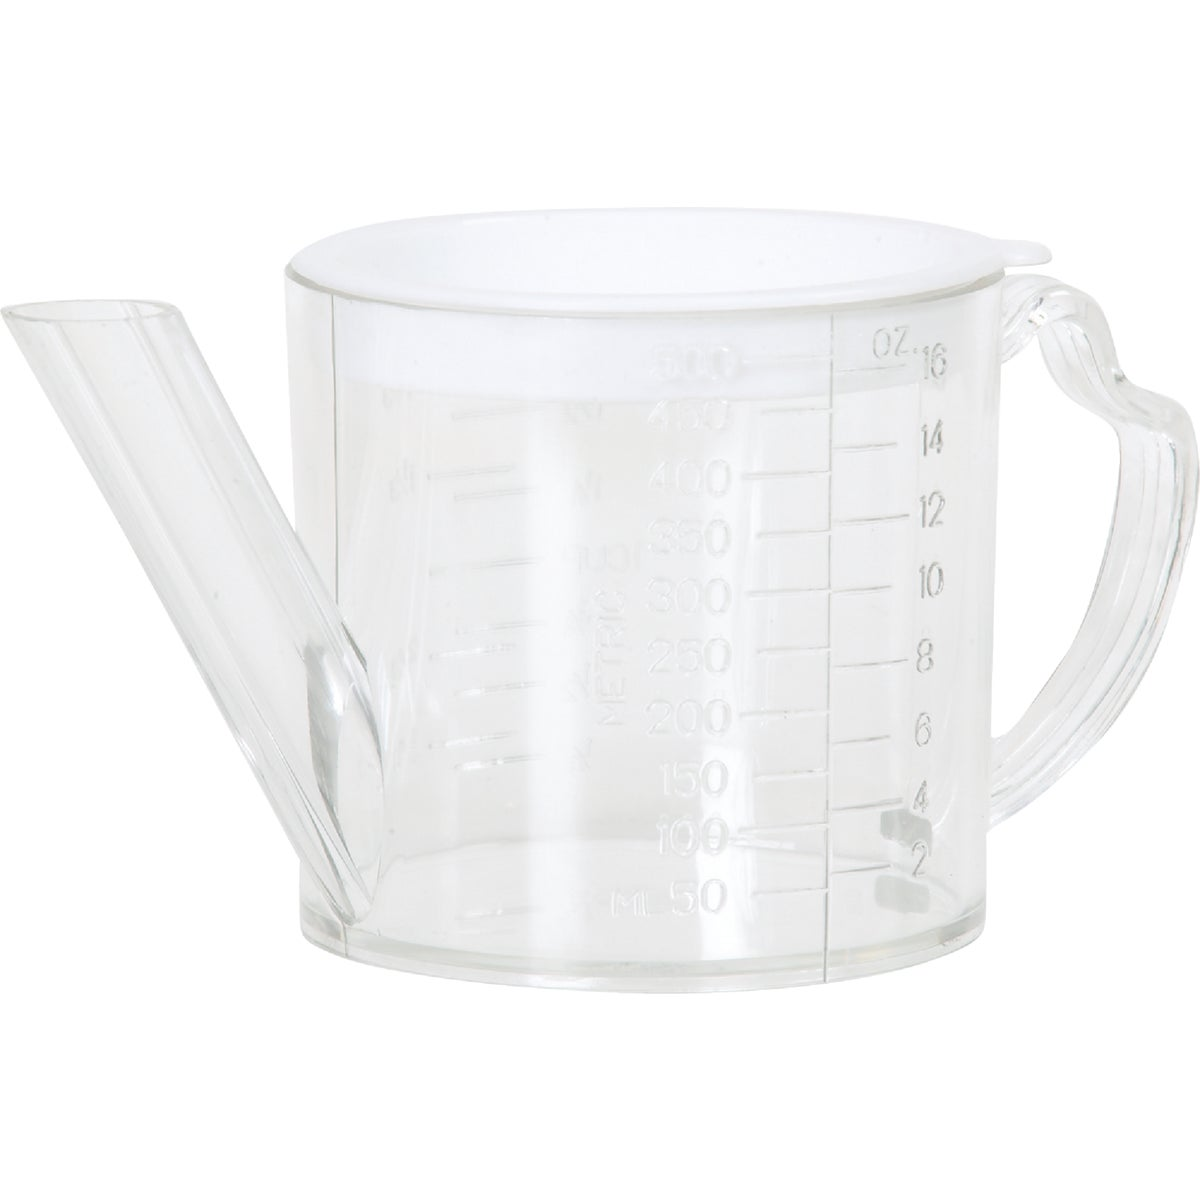 2 CUP SEPARATOR/STRAINER - 3023 by Norpro